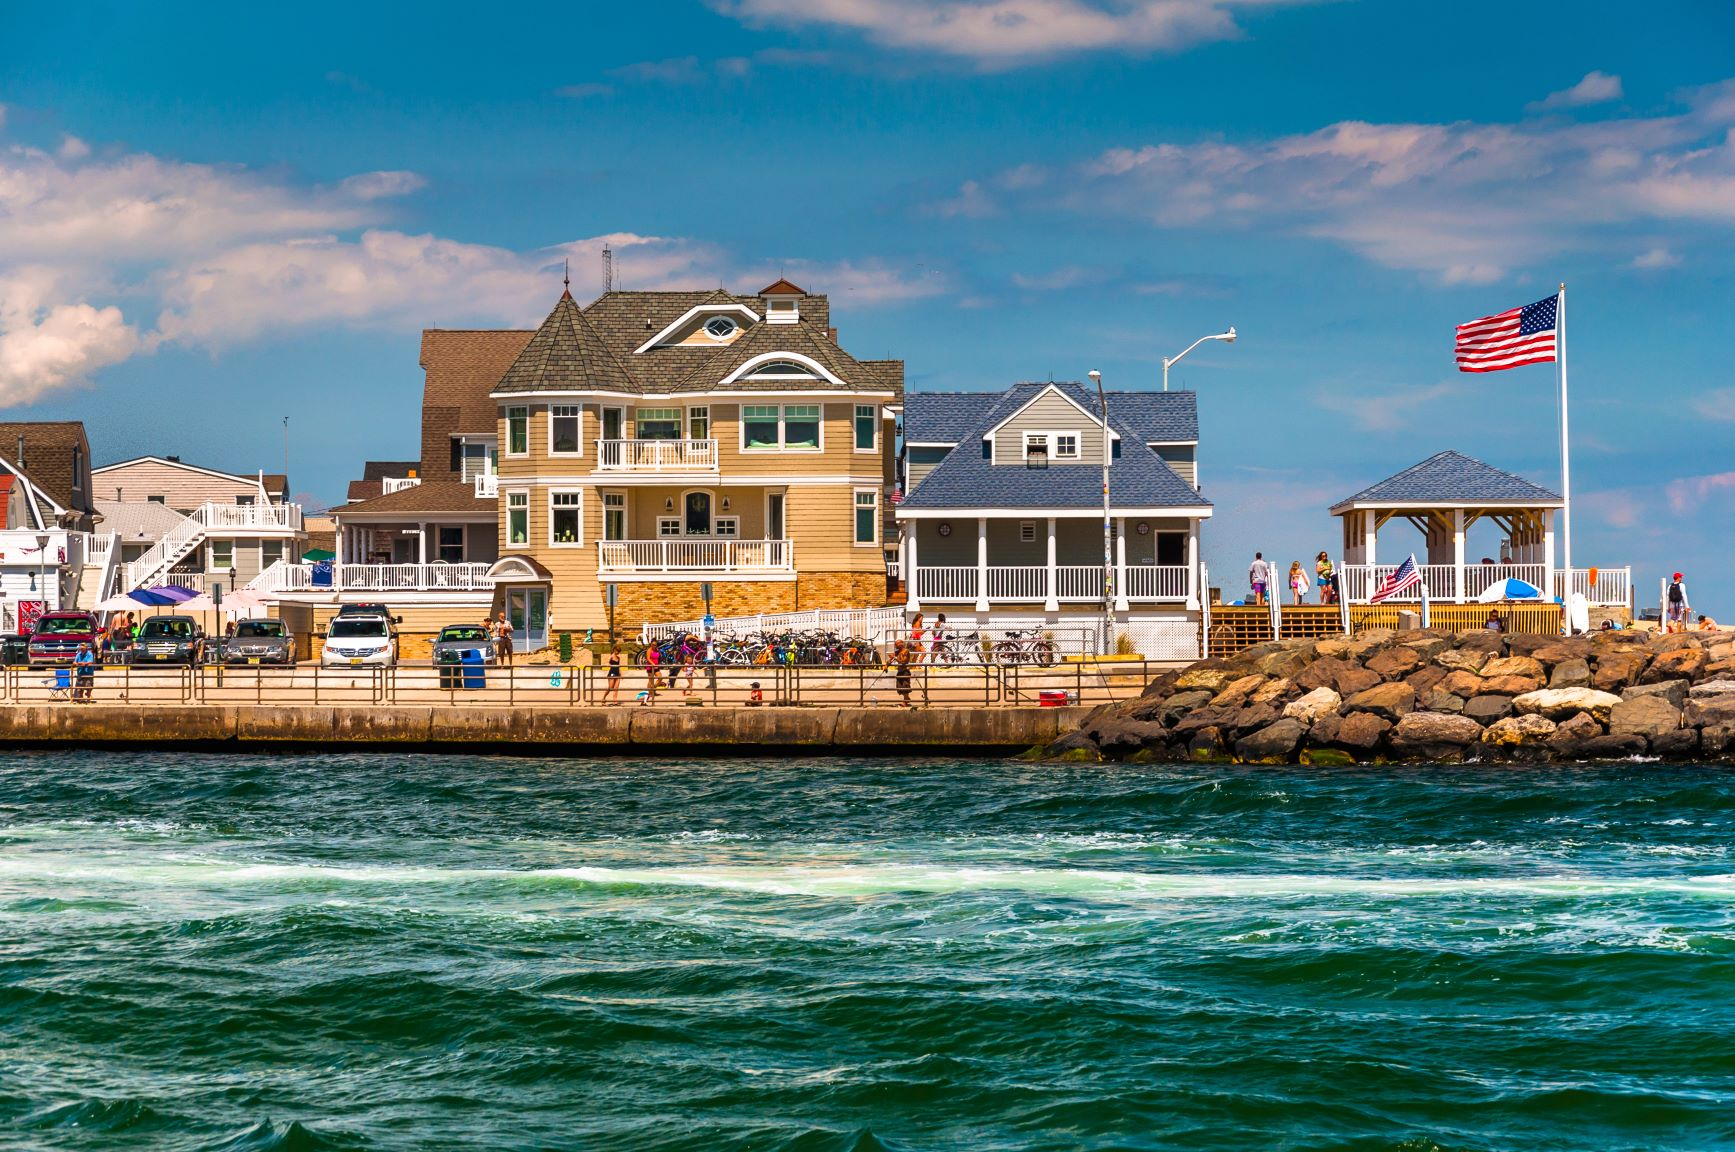 Guide to Rent Out Your Ideal Vacation Home in Ocean City, NJ